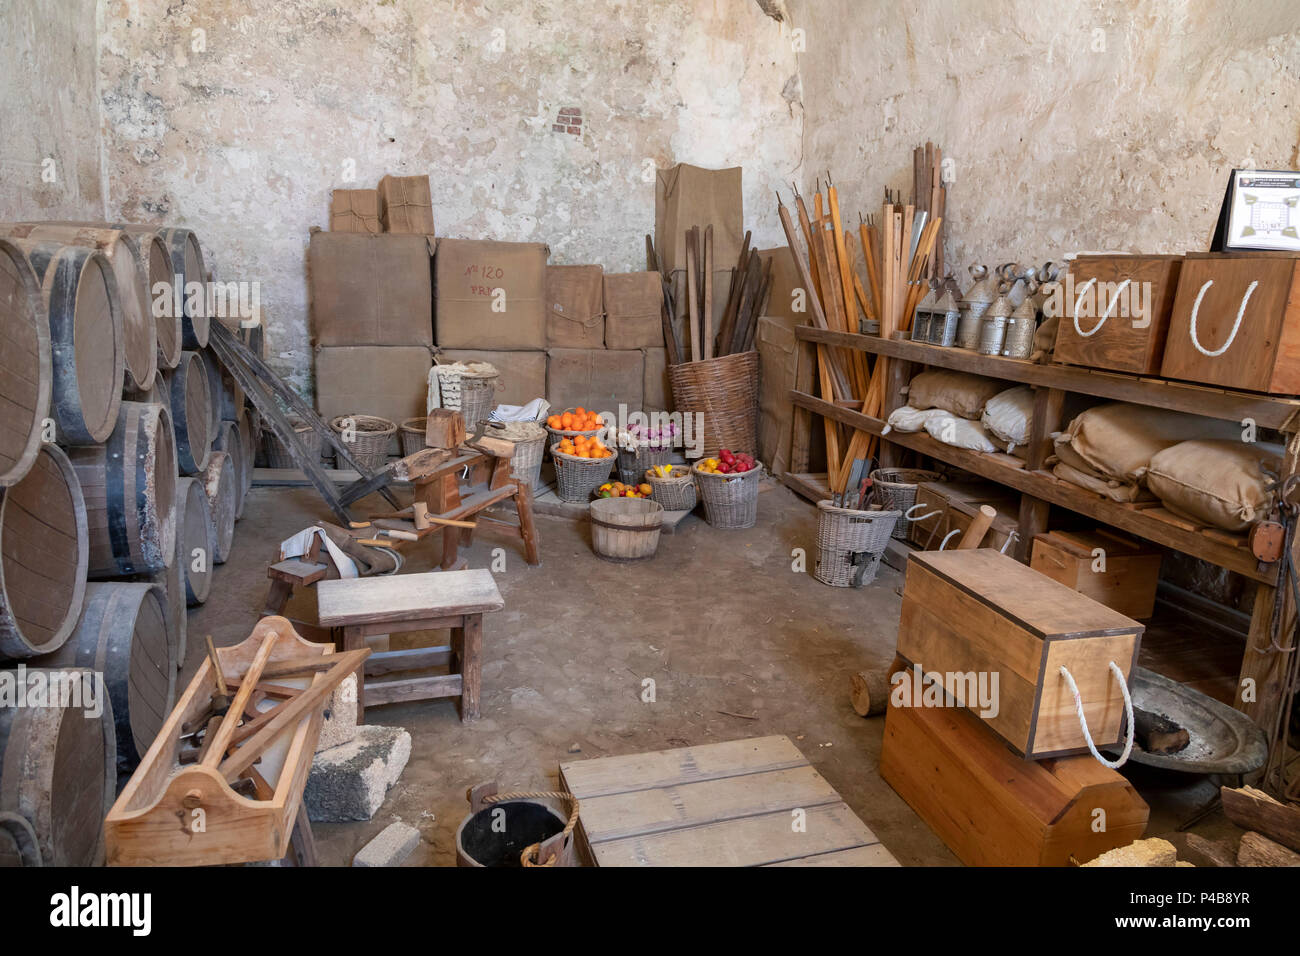 St. Augustine, Florida   A Storage Room At Castillo De San Marcos. The  Spanish Built The Fort, Now A National Monument, In The Late 17th Century.  It W